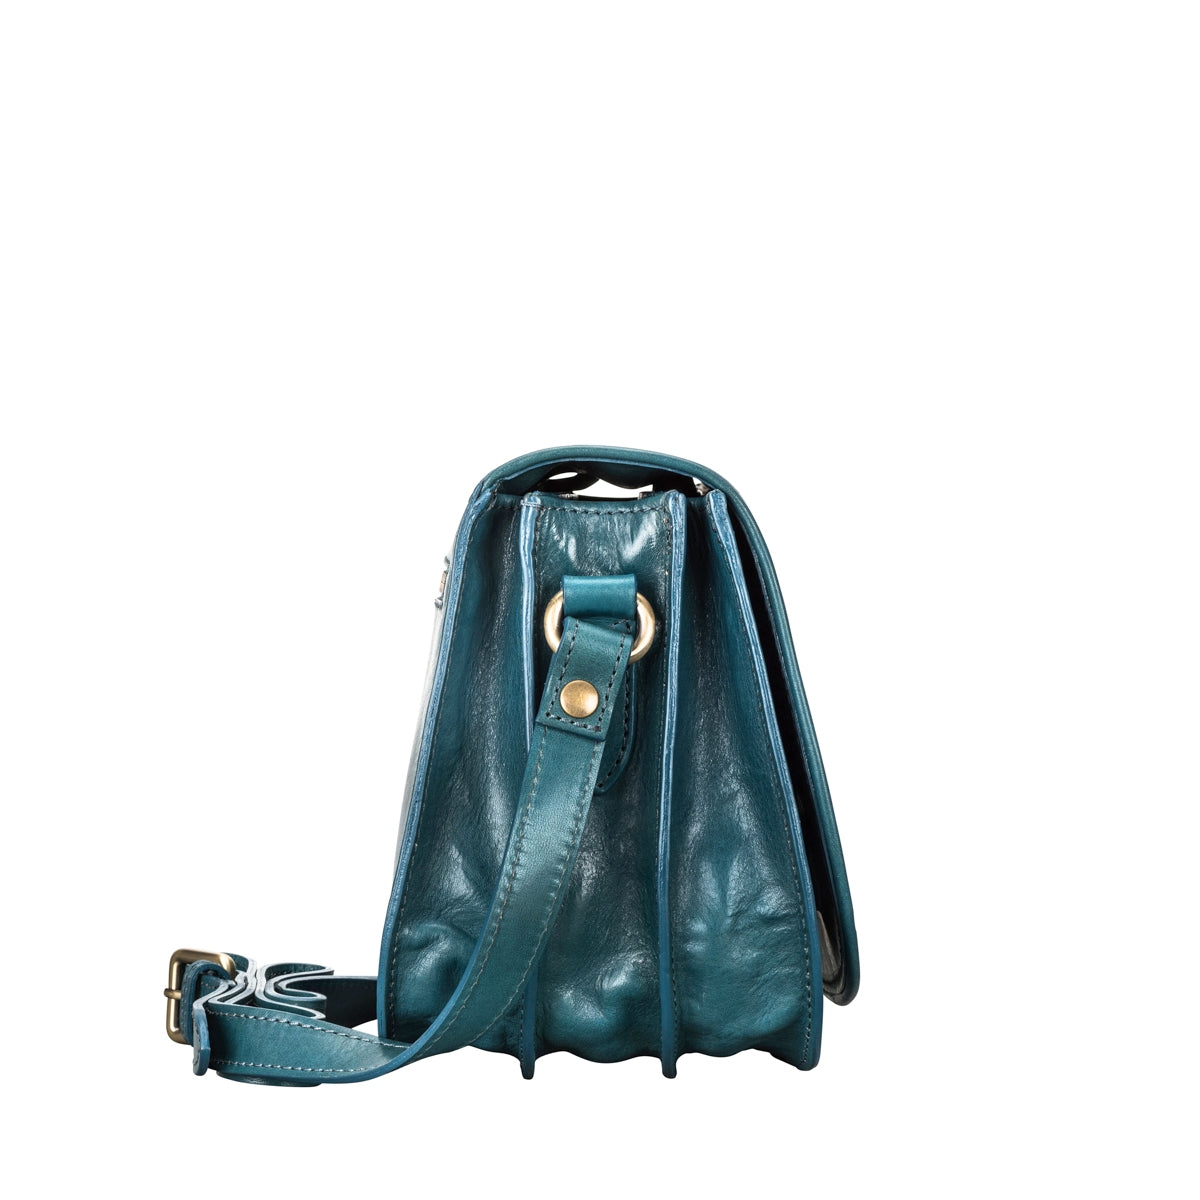 Image 3 of the 'MedollaM' Petrol Leather Women's Saddle Bag